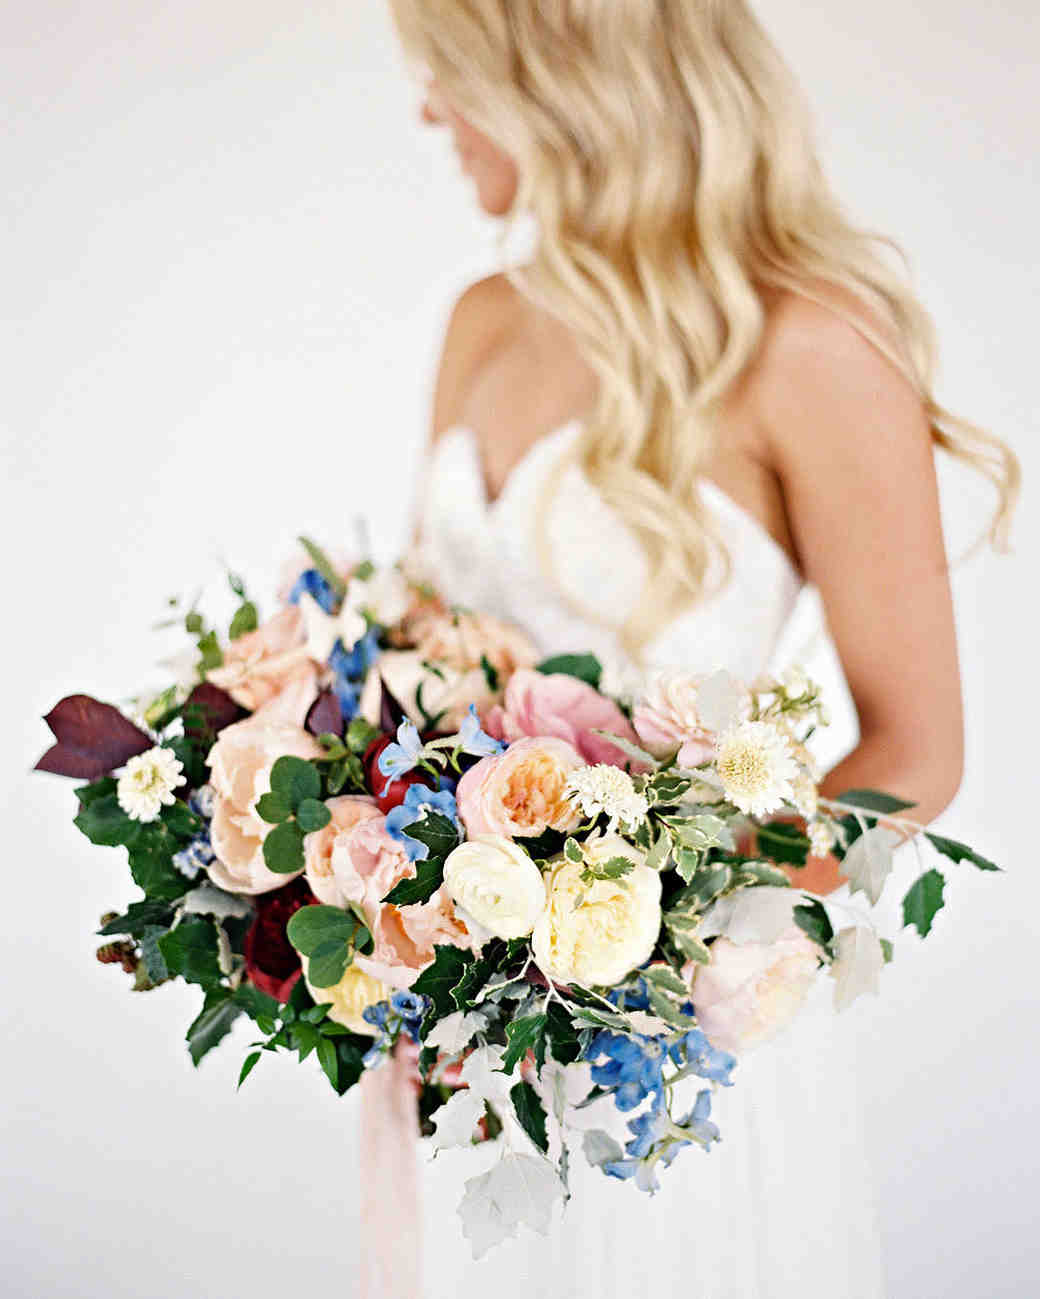 Wedding Flower Center Pieces: The 50 Best Spring Wedding Bouquets